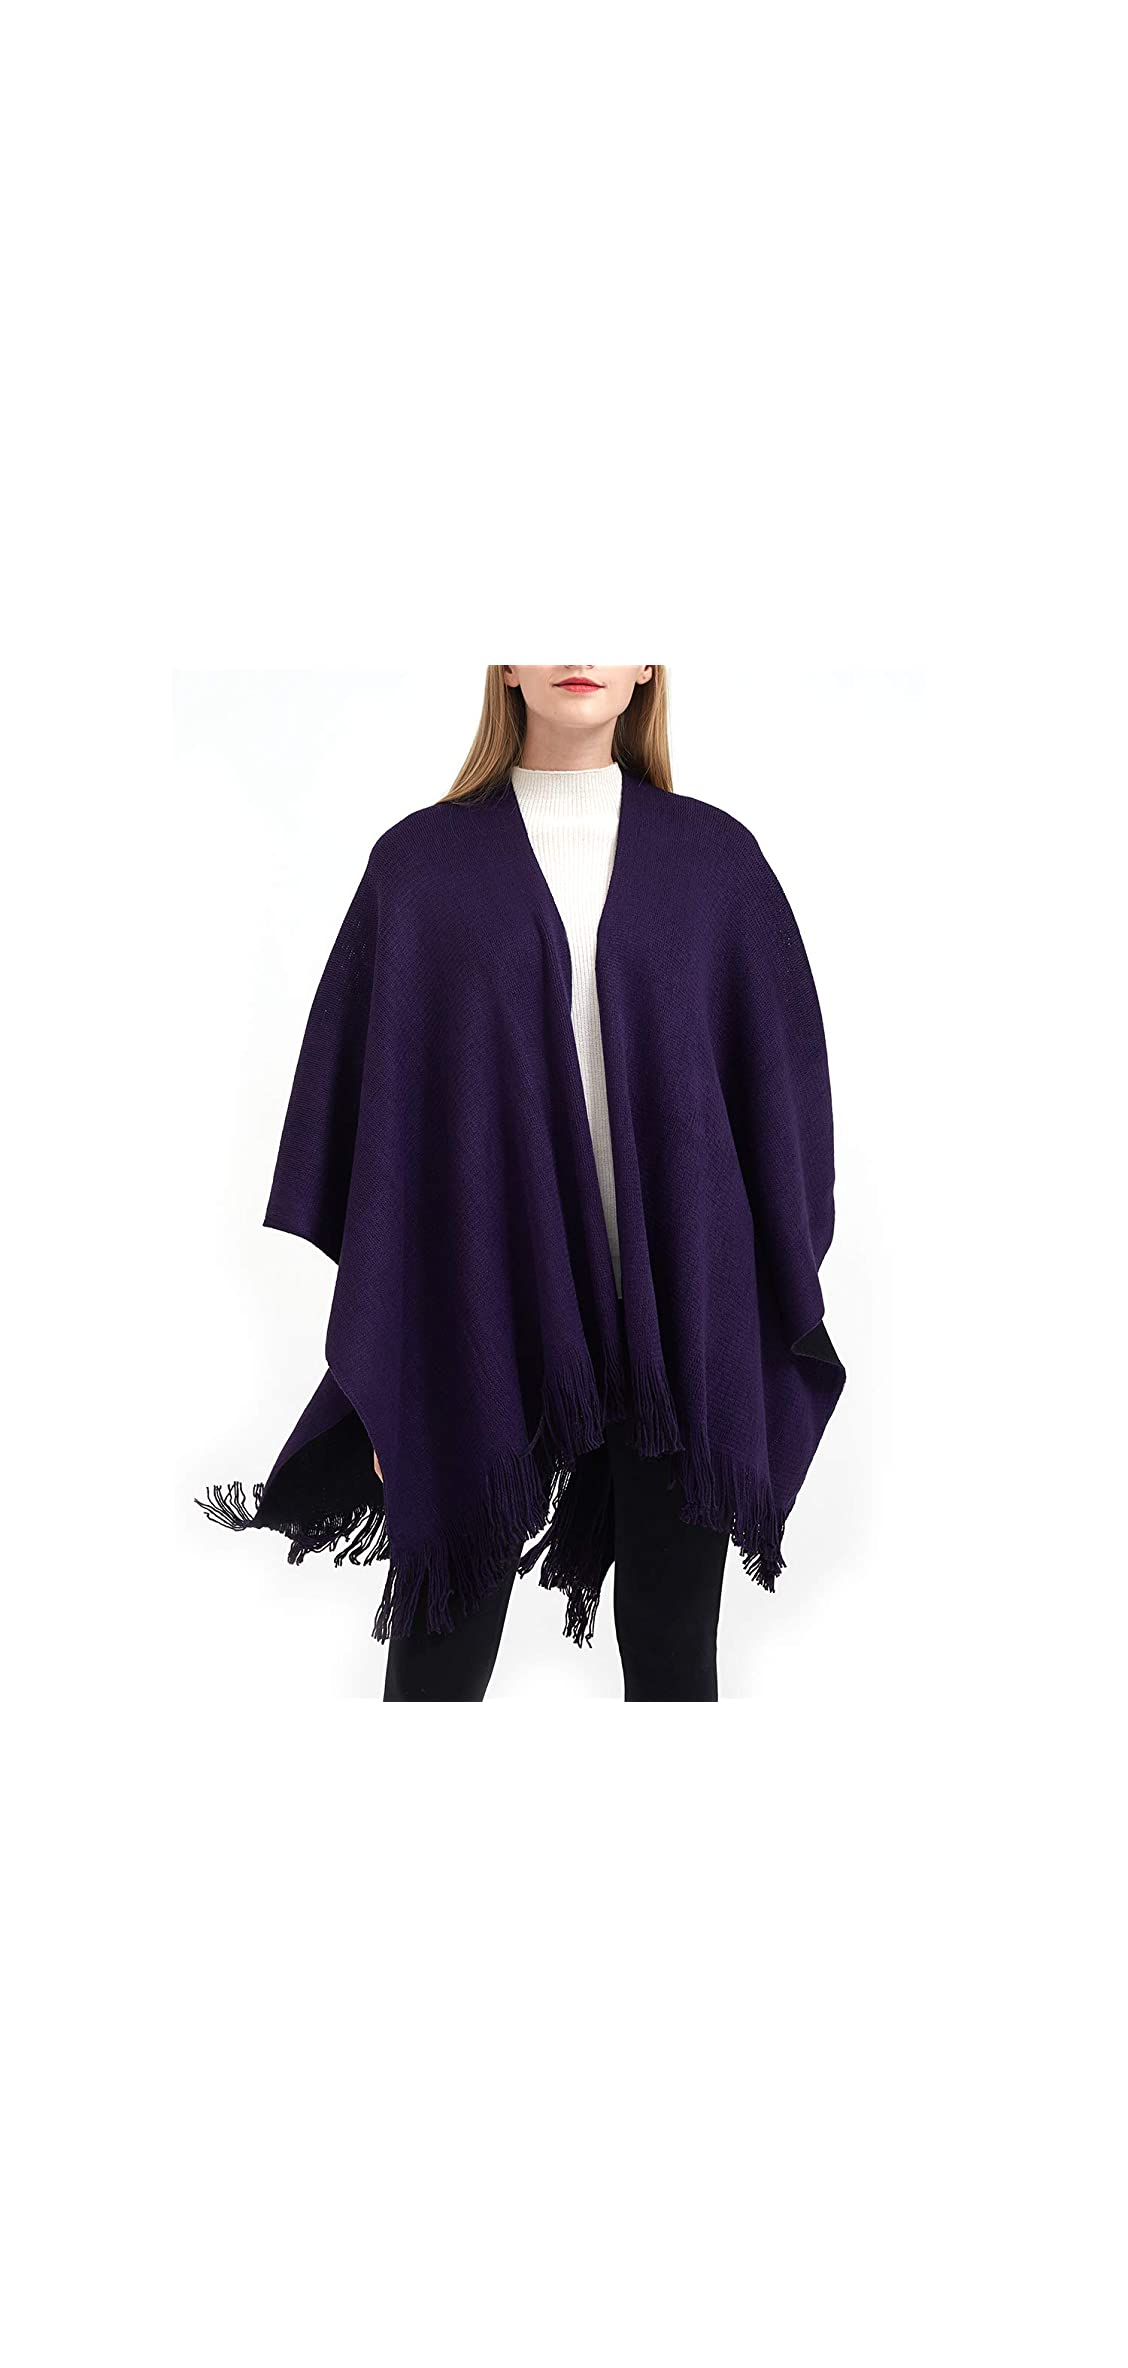 Women's Winter Knitted Faux Cashmere Poncho Capes Shawl